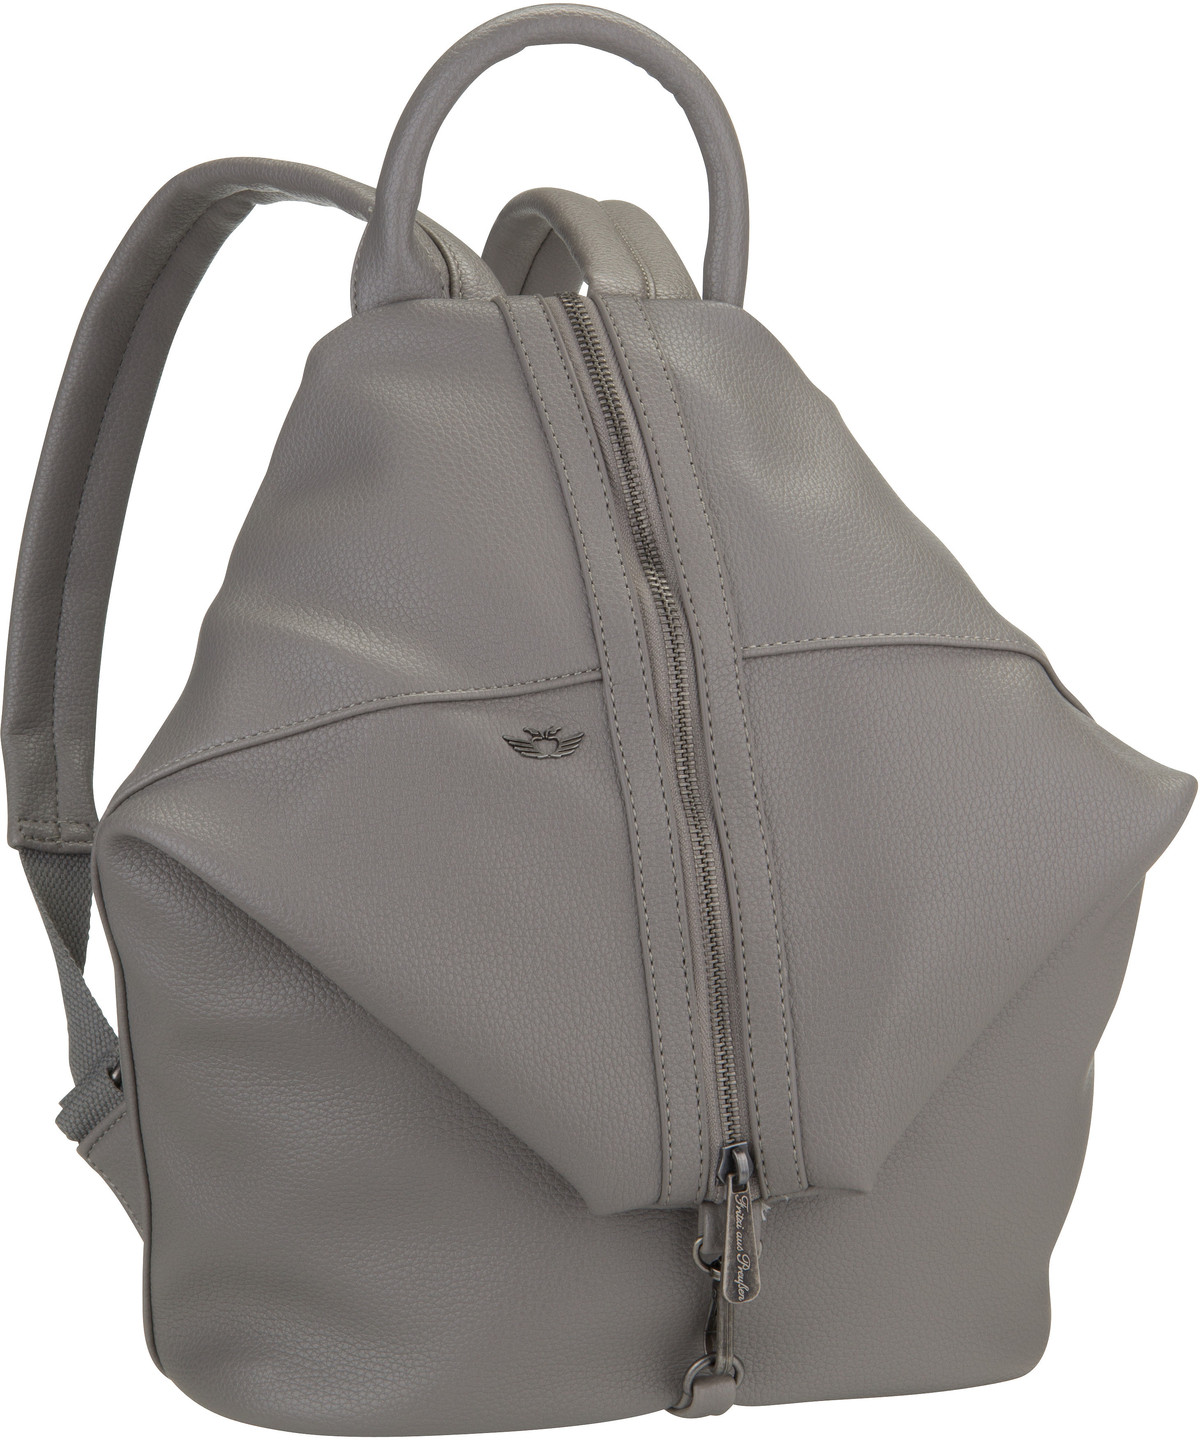 Rucksack / Daypack Marit Reloaded Philo Grey